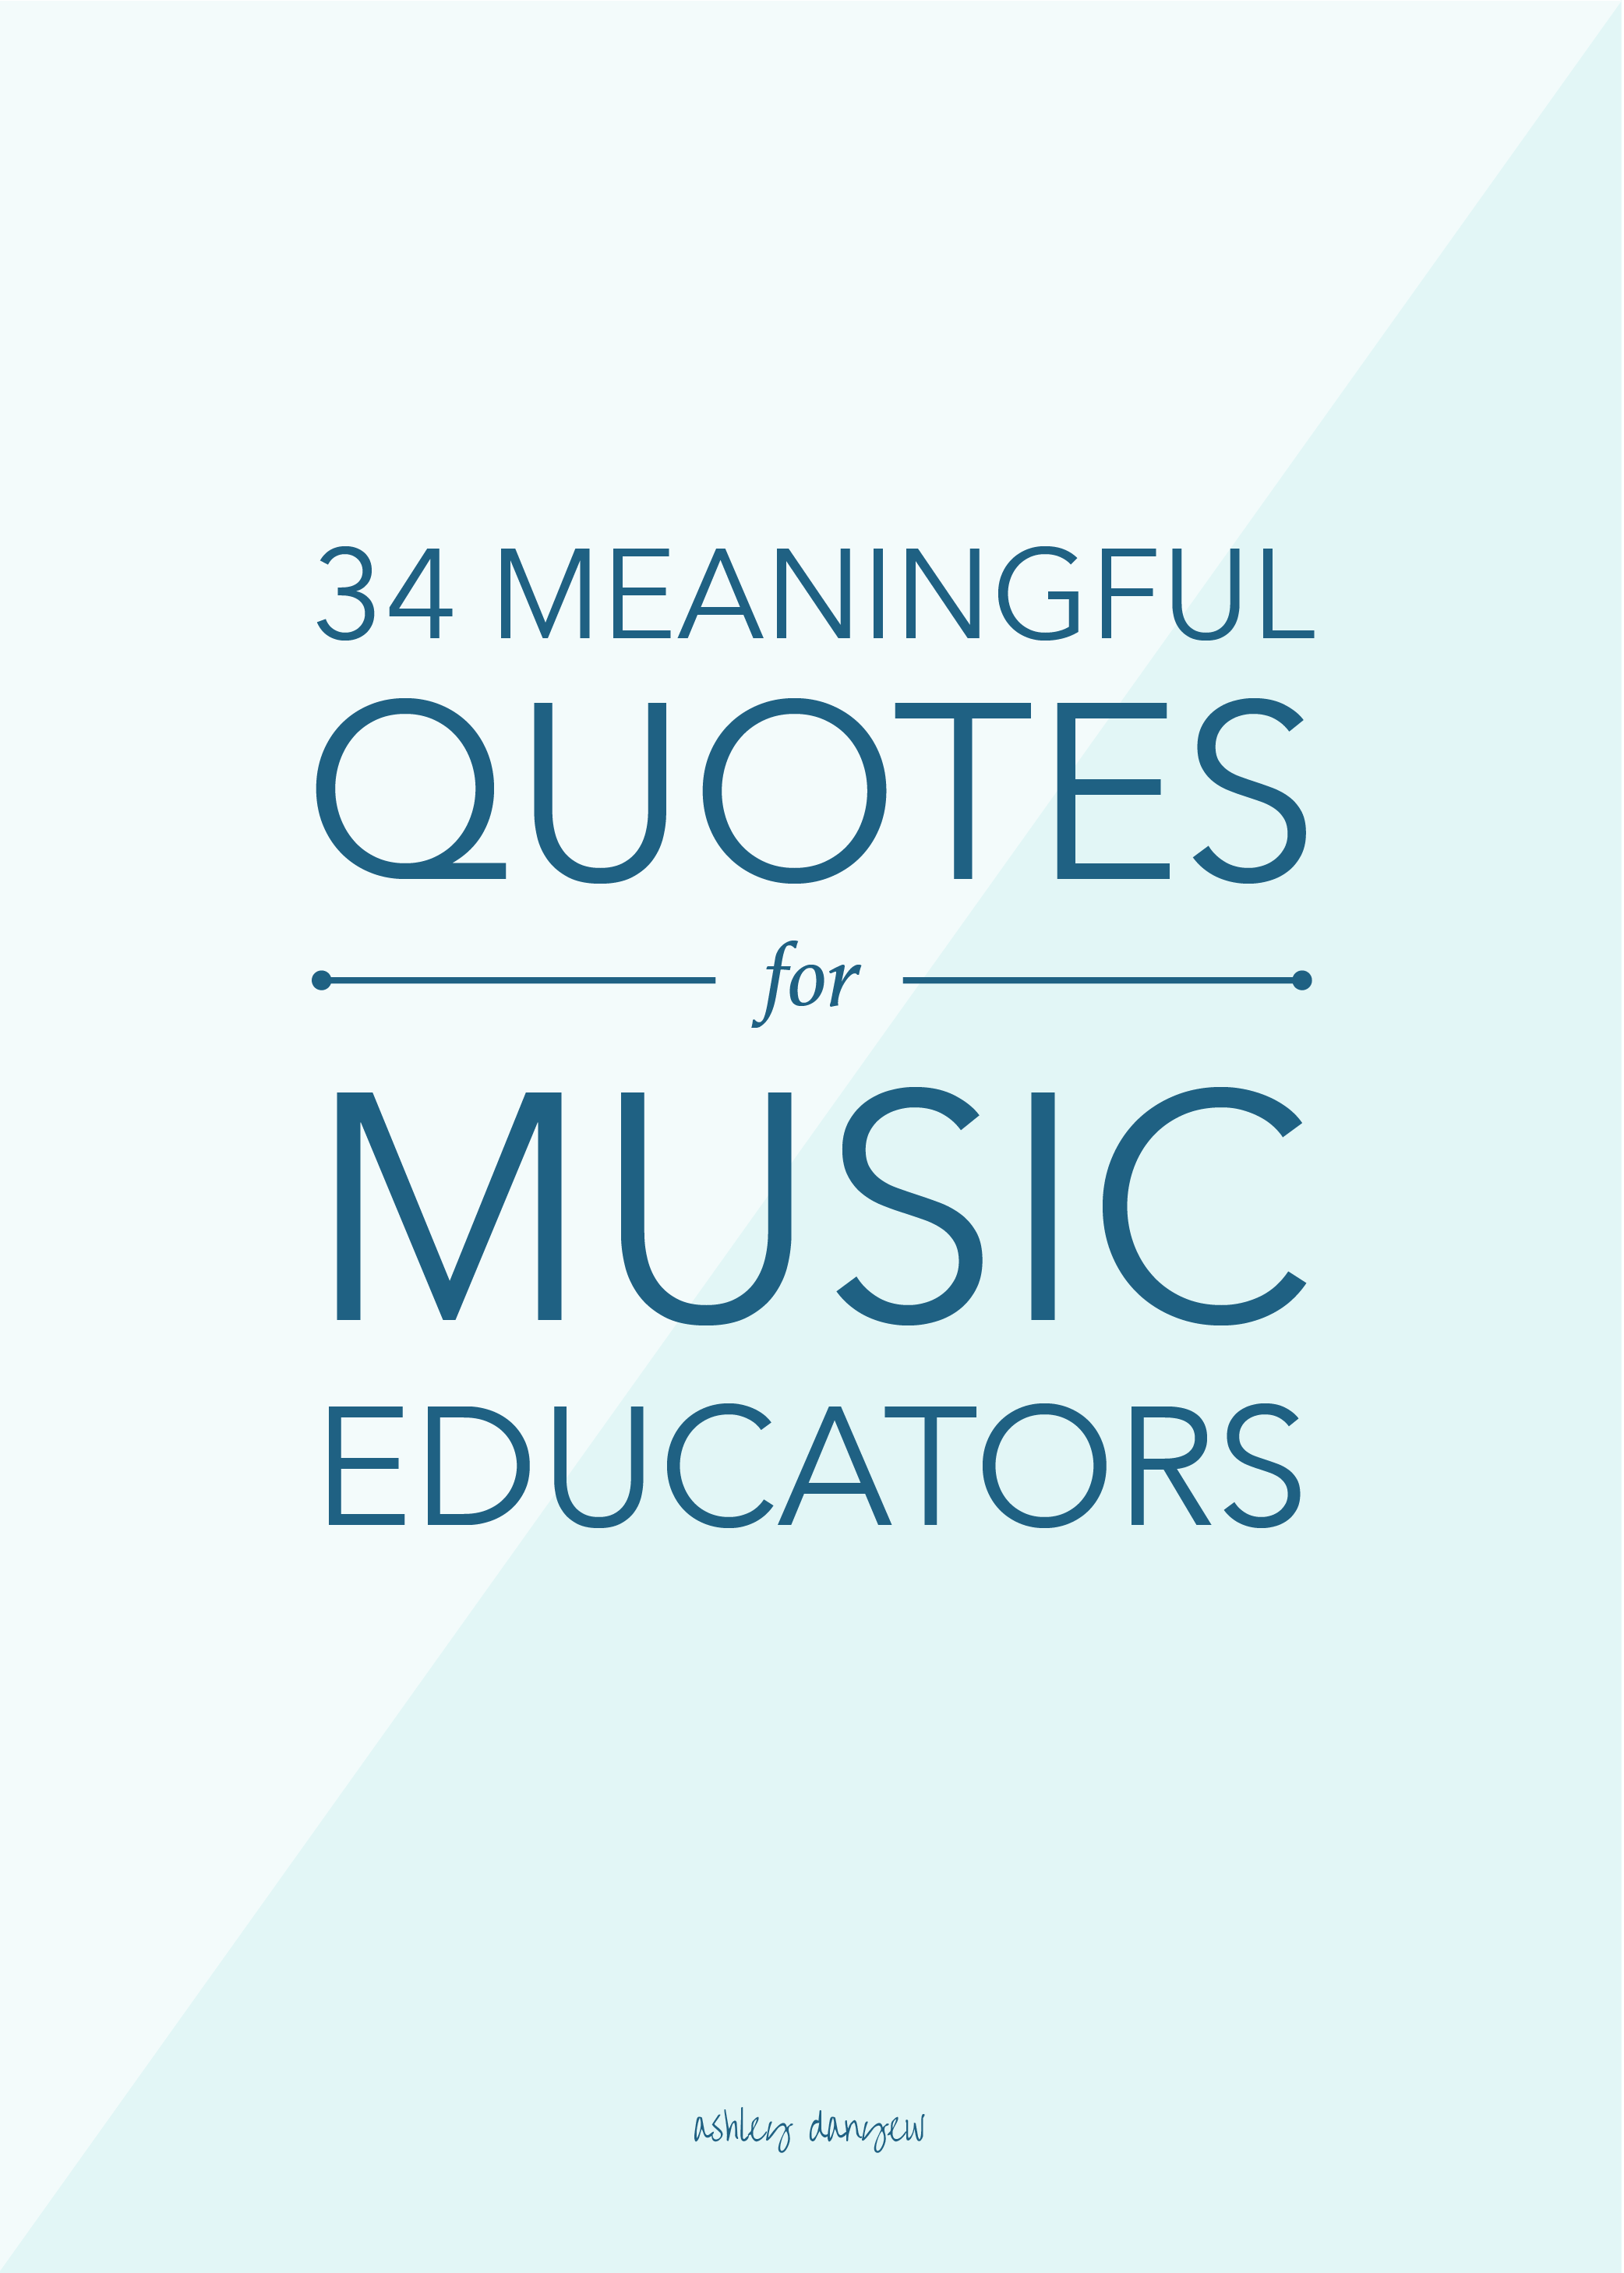 34 Meaningful Quotes for Music Educators | Music ideas | Music